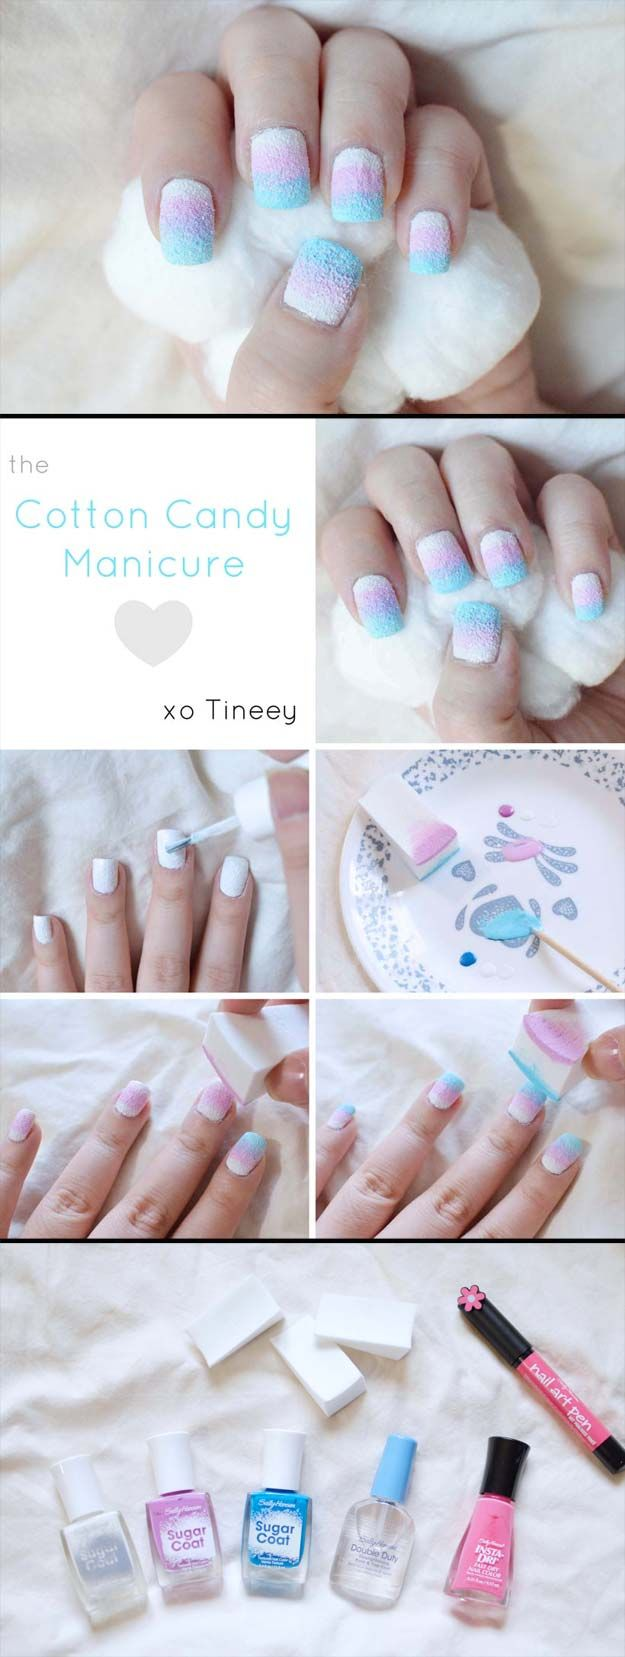 50 Cool Nail Art Designs for Teens | Pink ombre nails, Manicure and ...